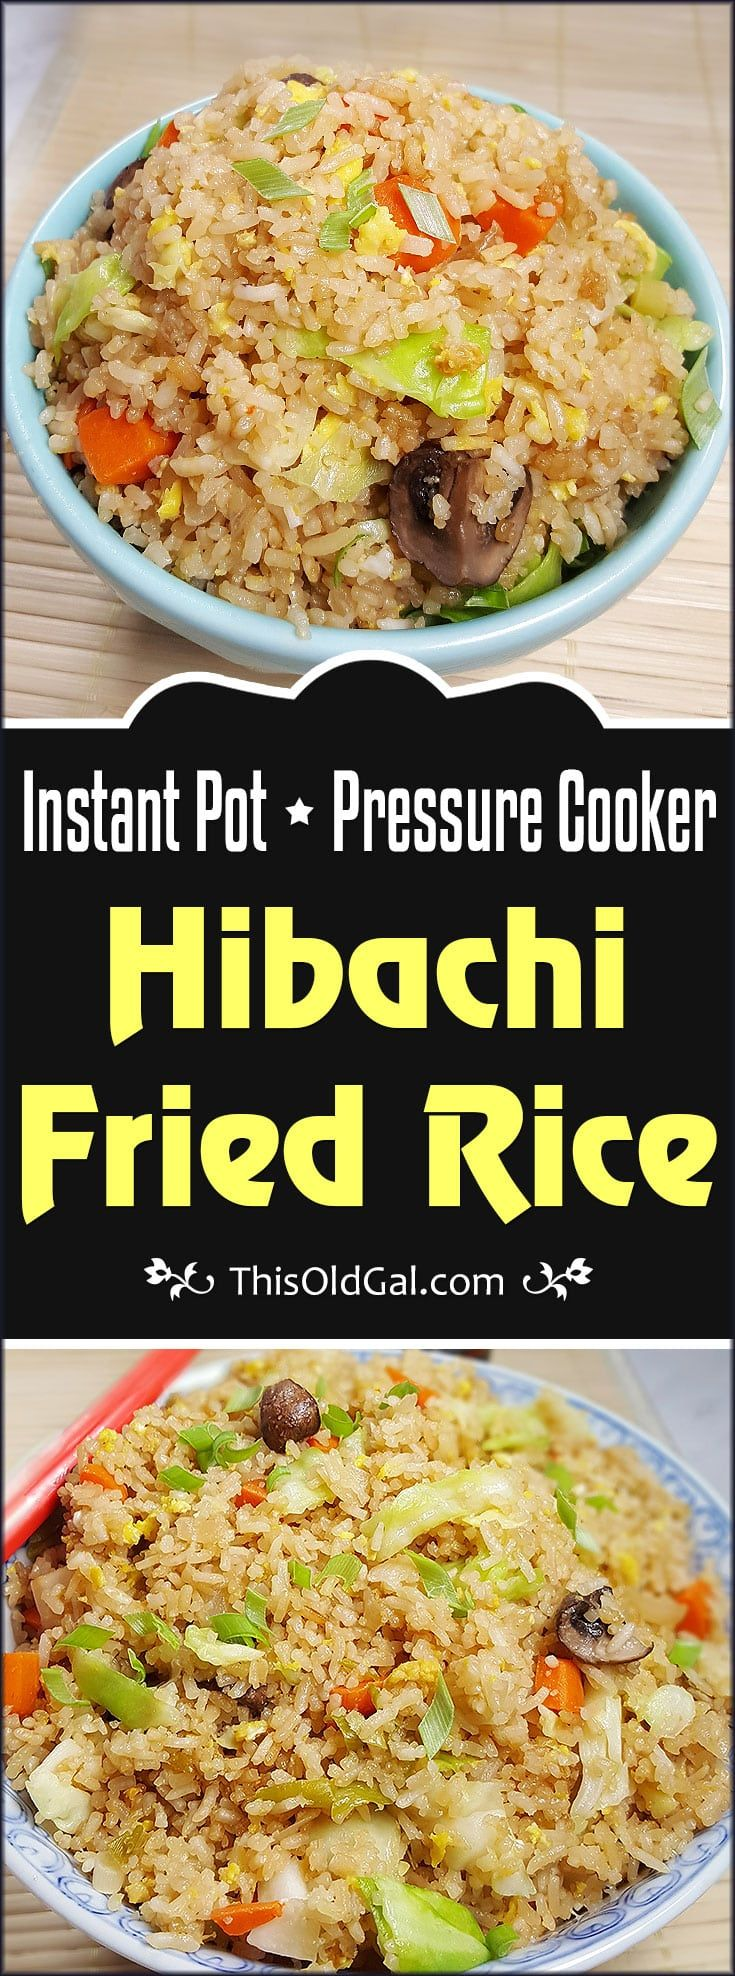 This Instant Pot Pressure Cooker Fried Rice recipe is as close to traditional Fried Rice, as you can get without using a Wok or Hot Cast Iron. via @thisoldgalcooks